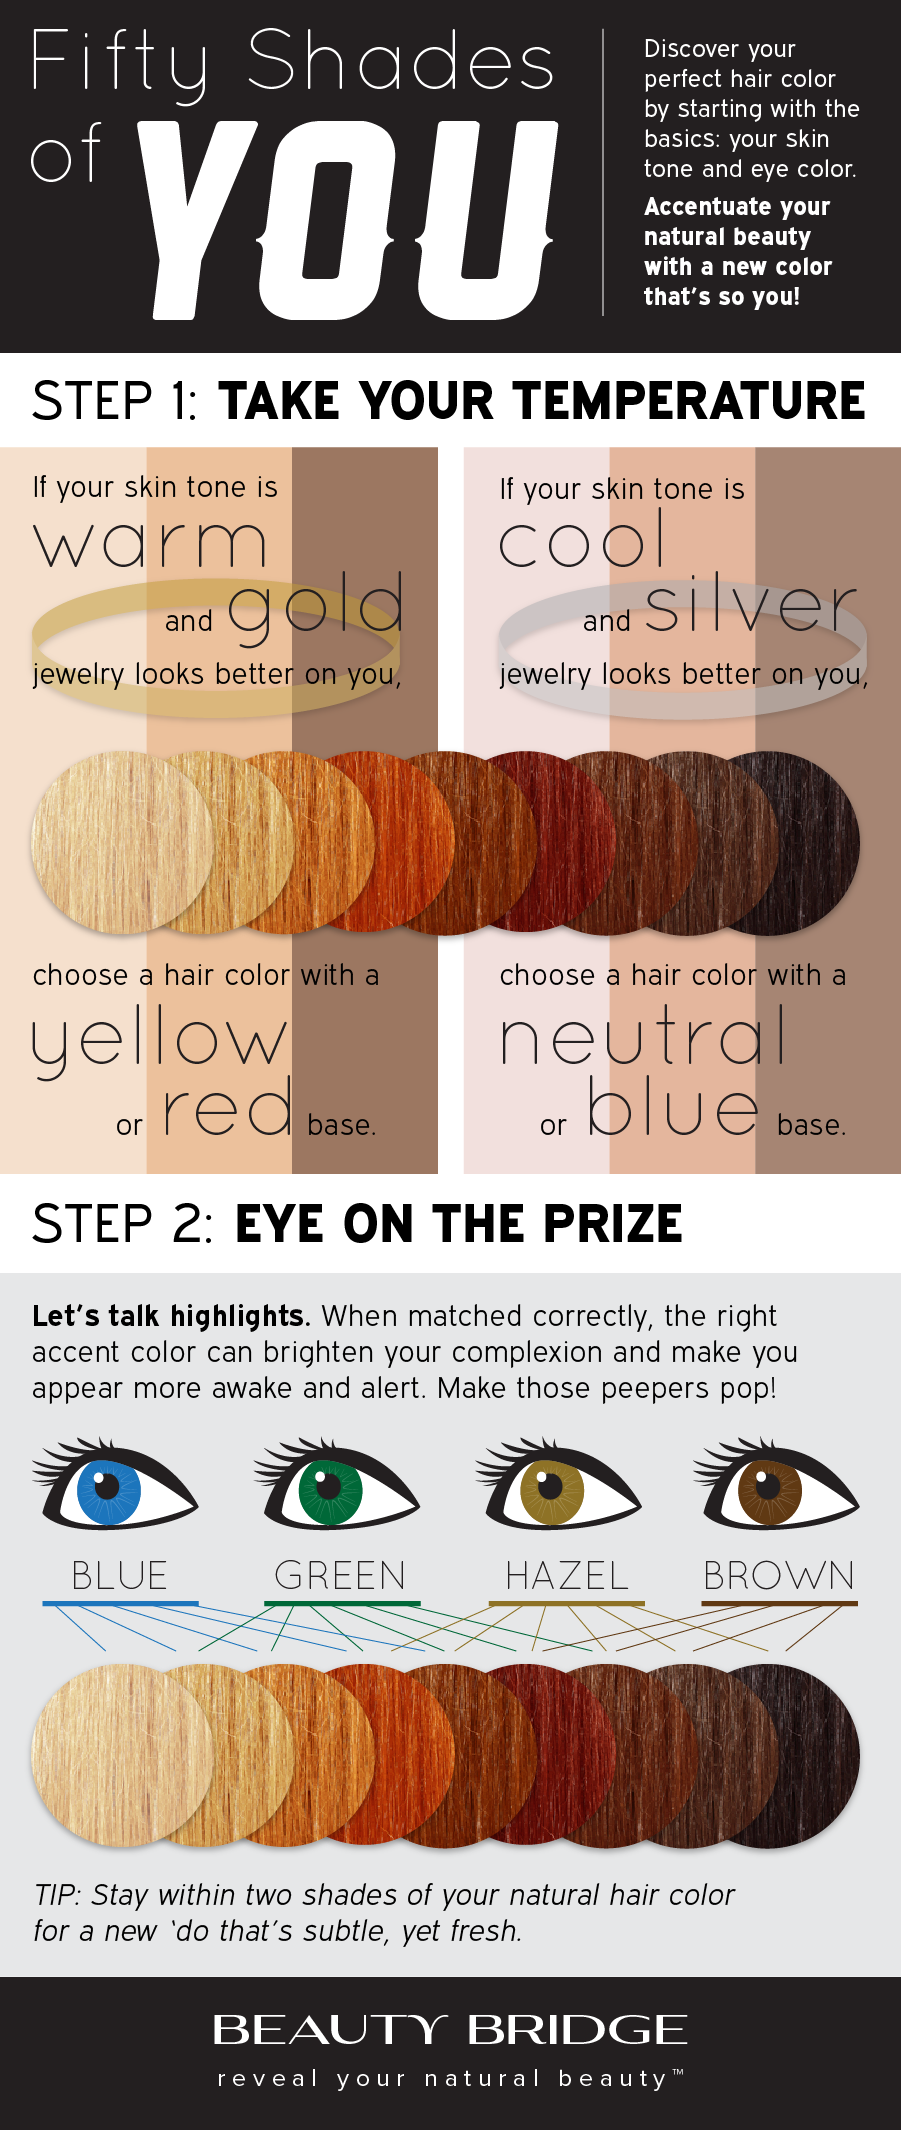 Ever Wondered Why Some People S Hair Color Looks So Good This Is A Great Graphic I M Going To Give It A Try Acc Perfect Hair Color Perfect Hair Hair Color